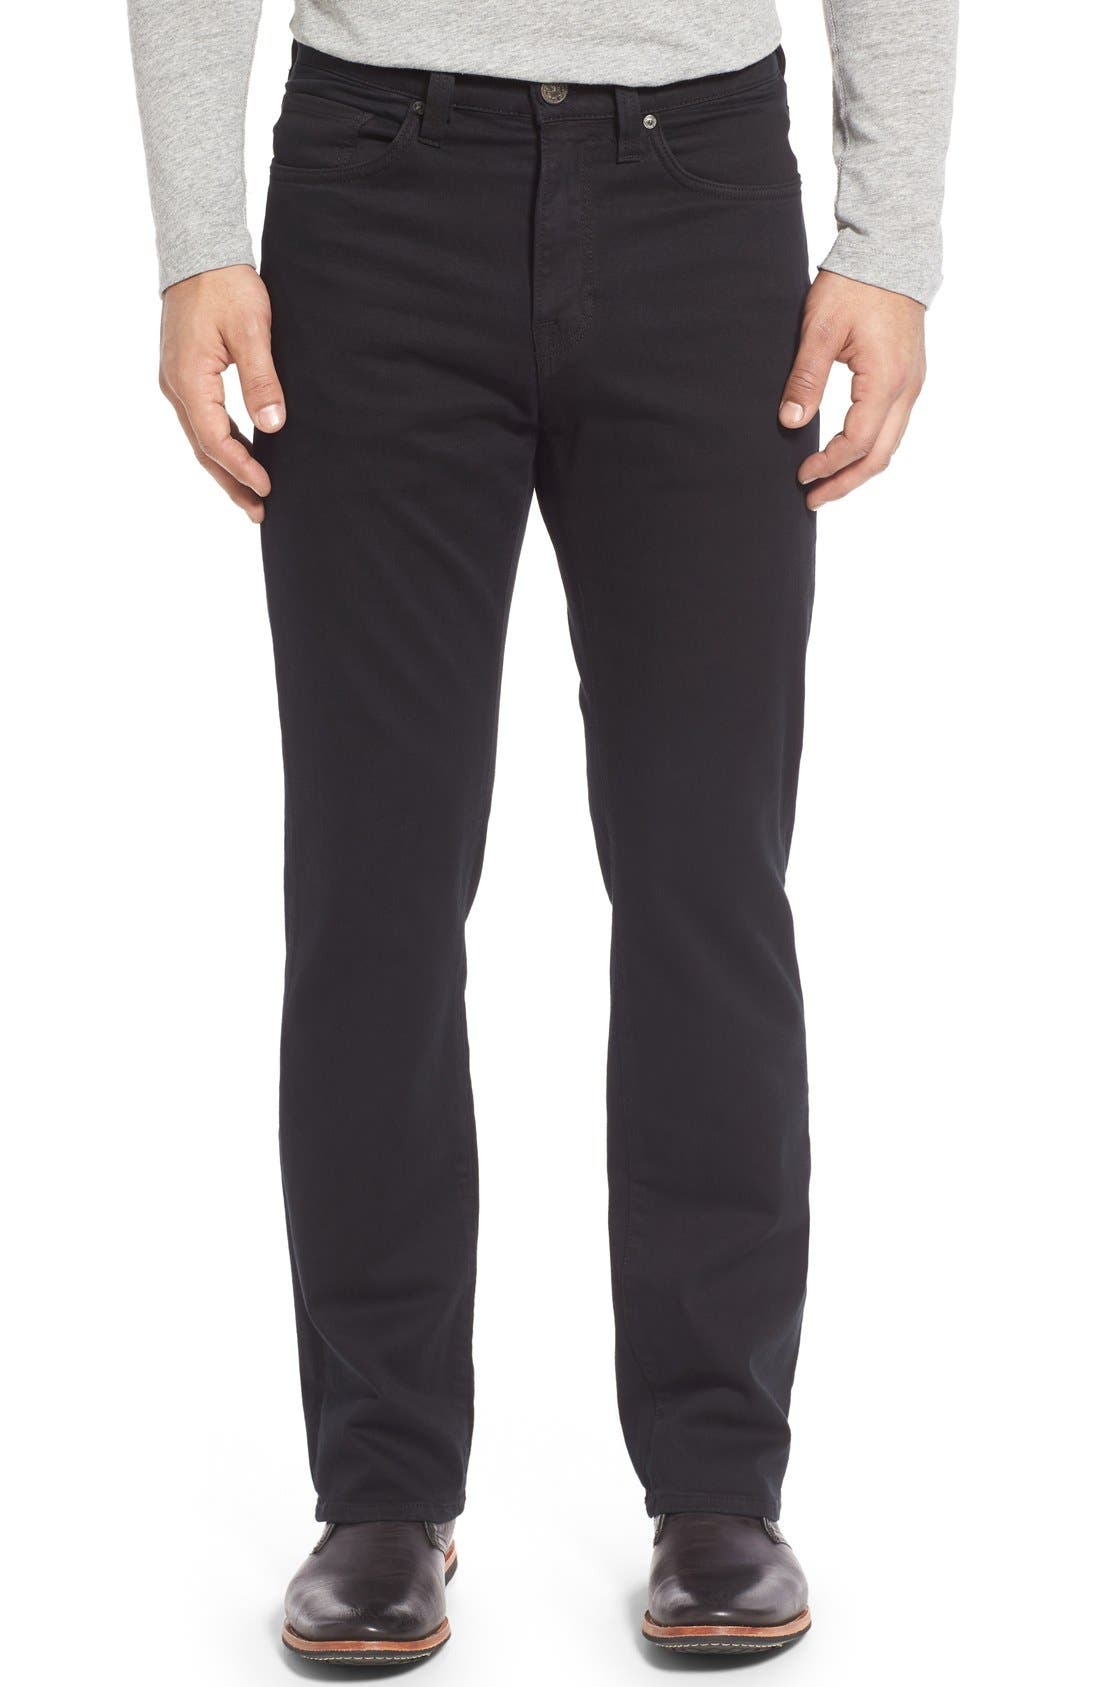 34 Heritage Charisma Relaxed Fit Jeans (Online Only) (Regular & Tall)